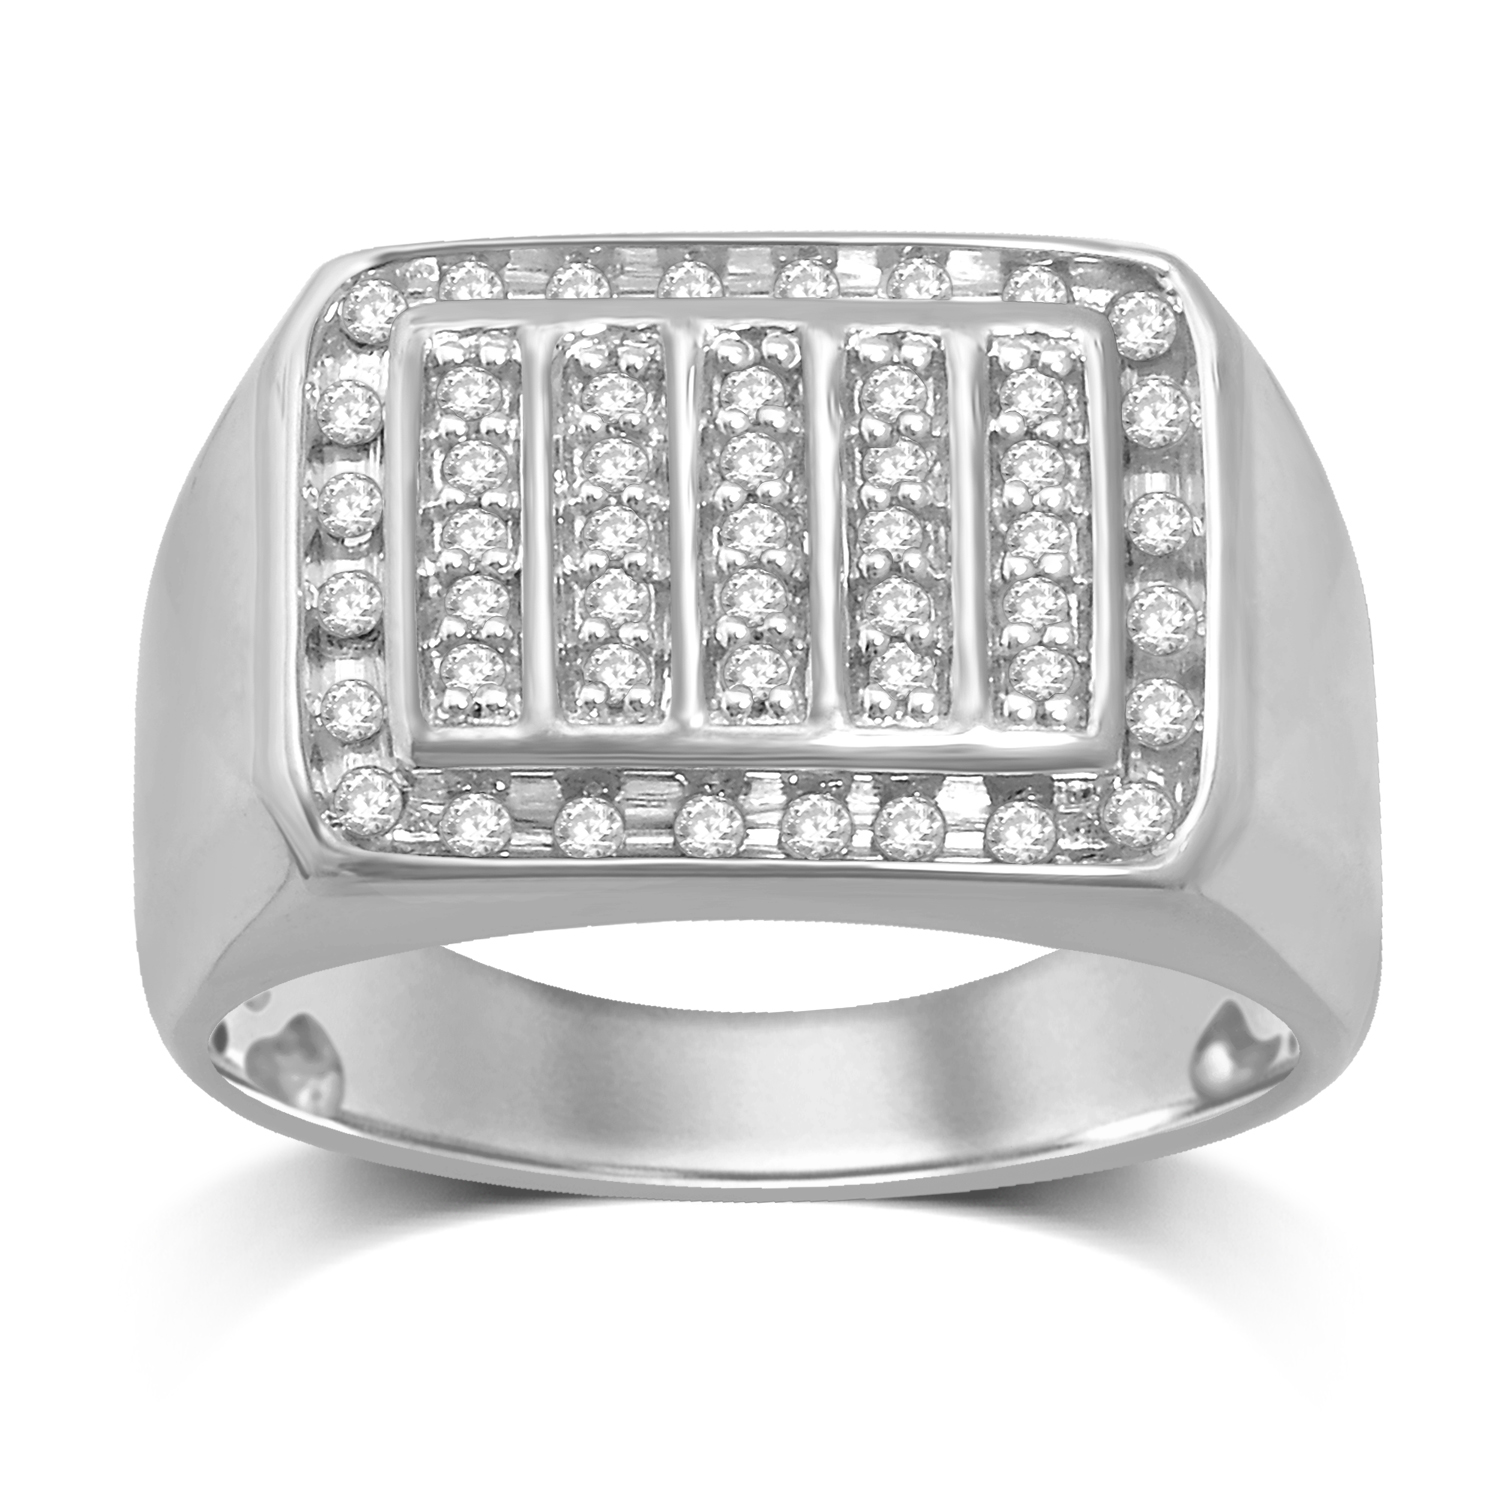 1/2 Carat of Diamond Gents Ring in Sterling Silver